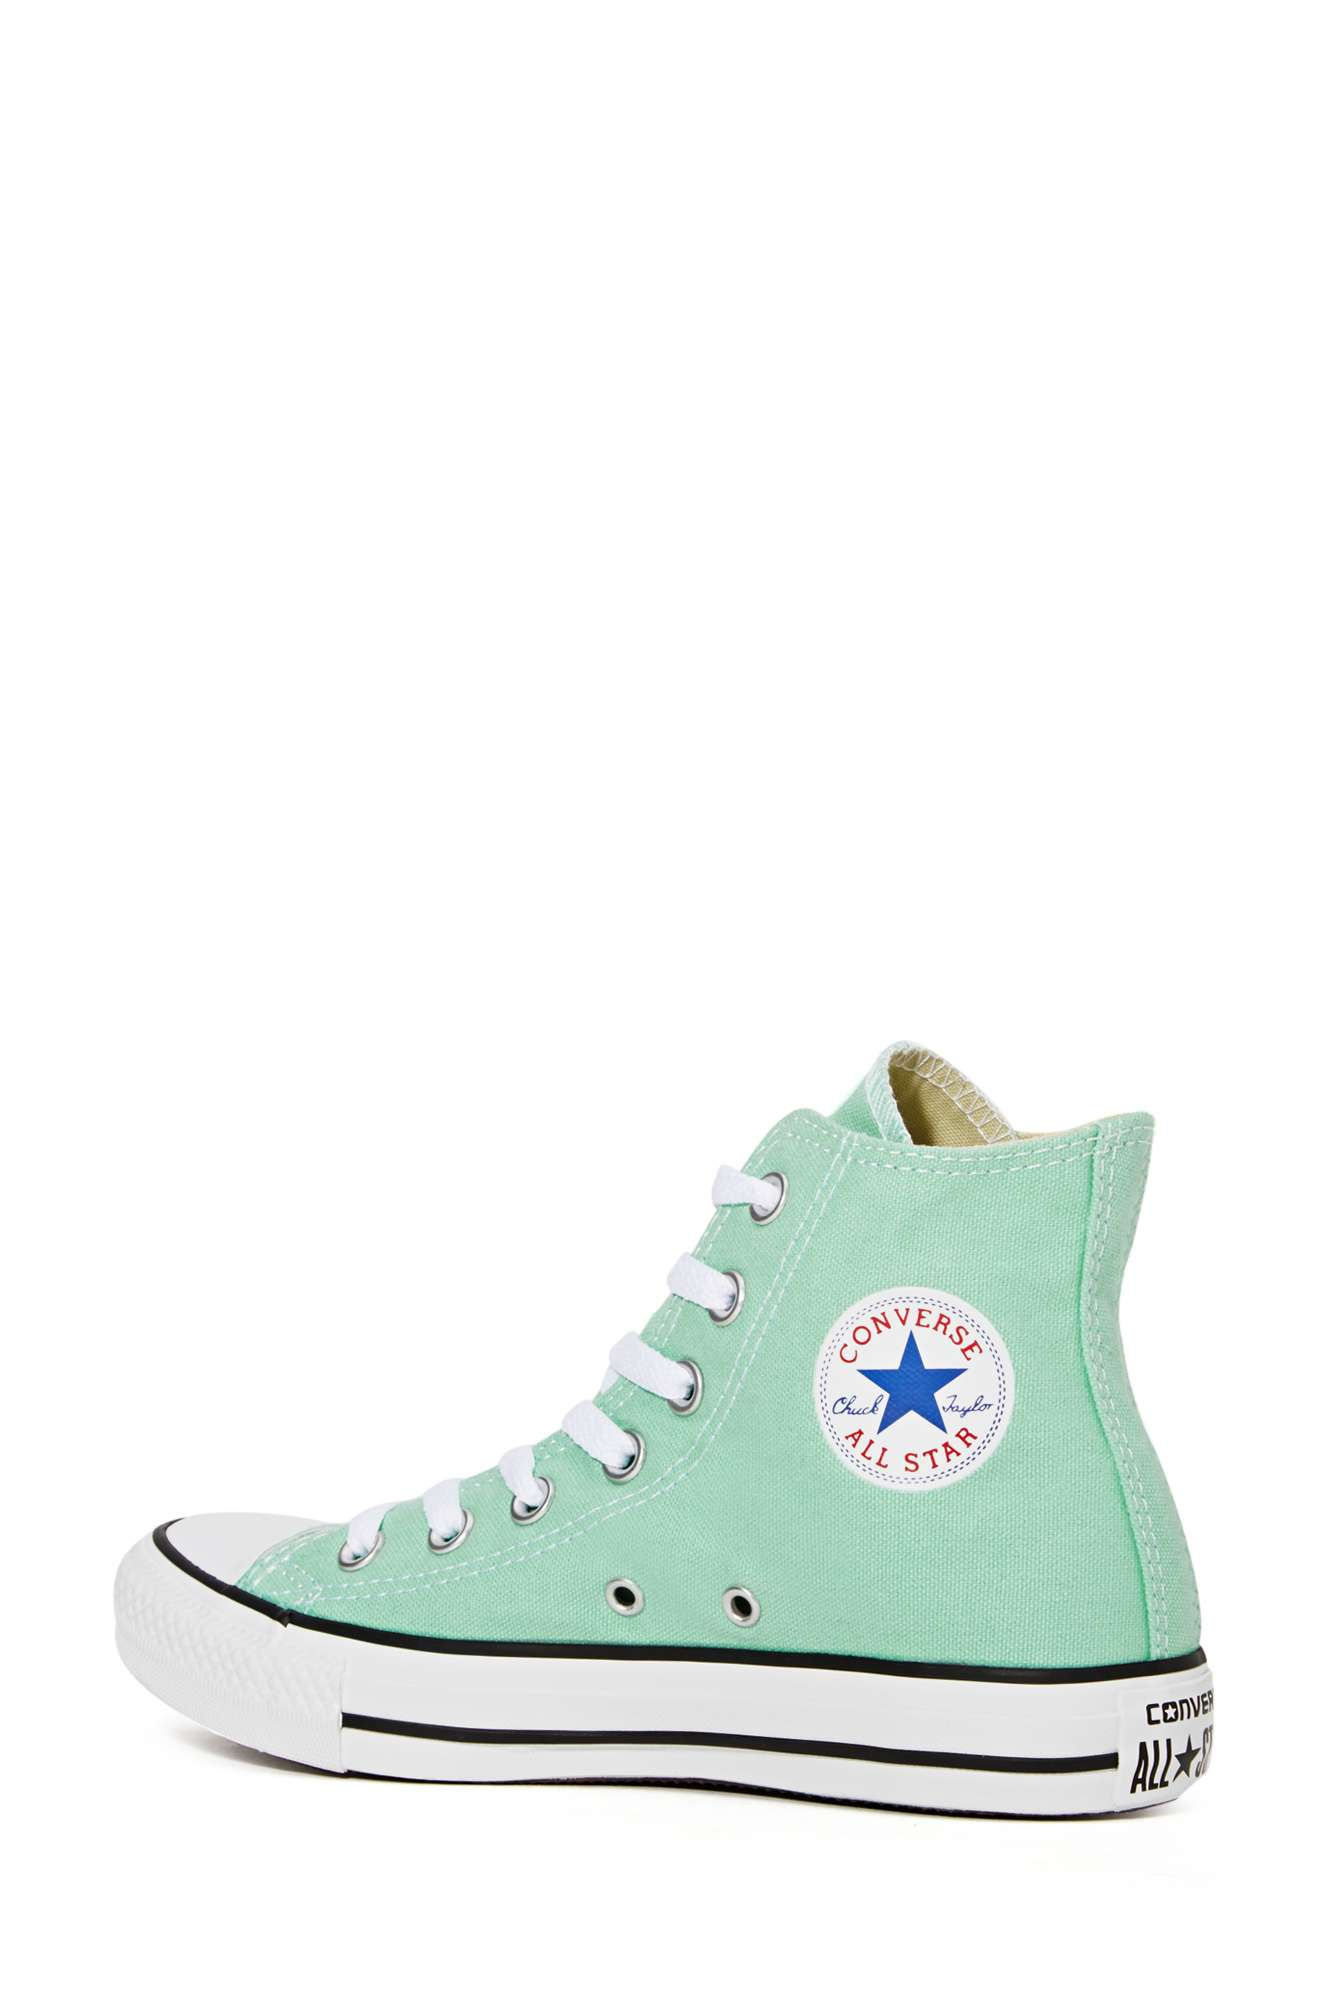 High Converse Nasty Gal Sneaker Top Lyst Star Green In Mint All RwXEFASq